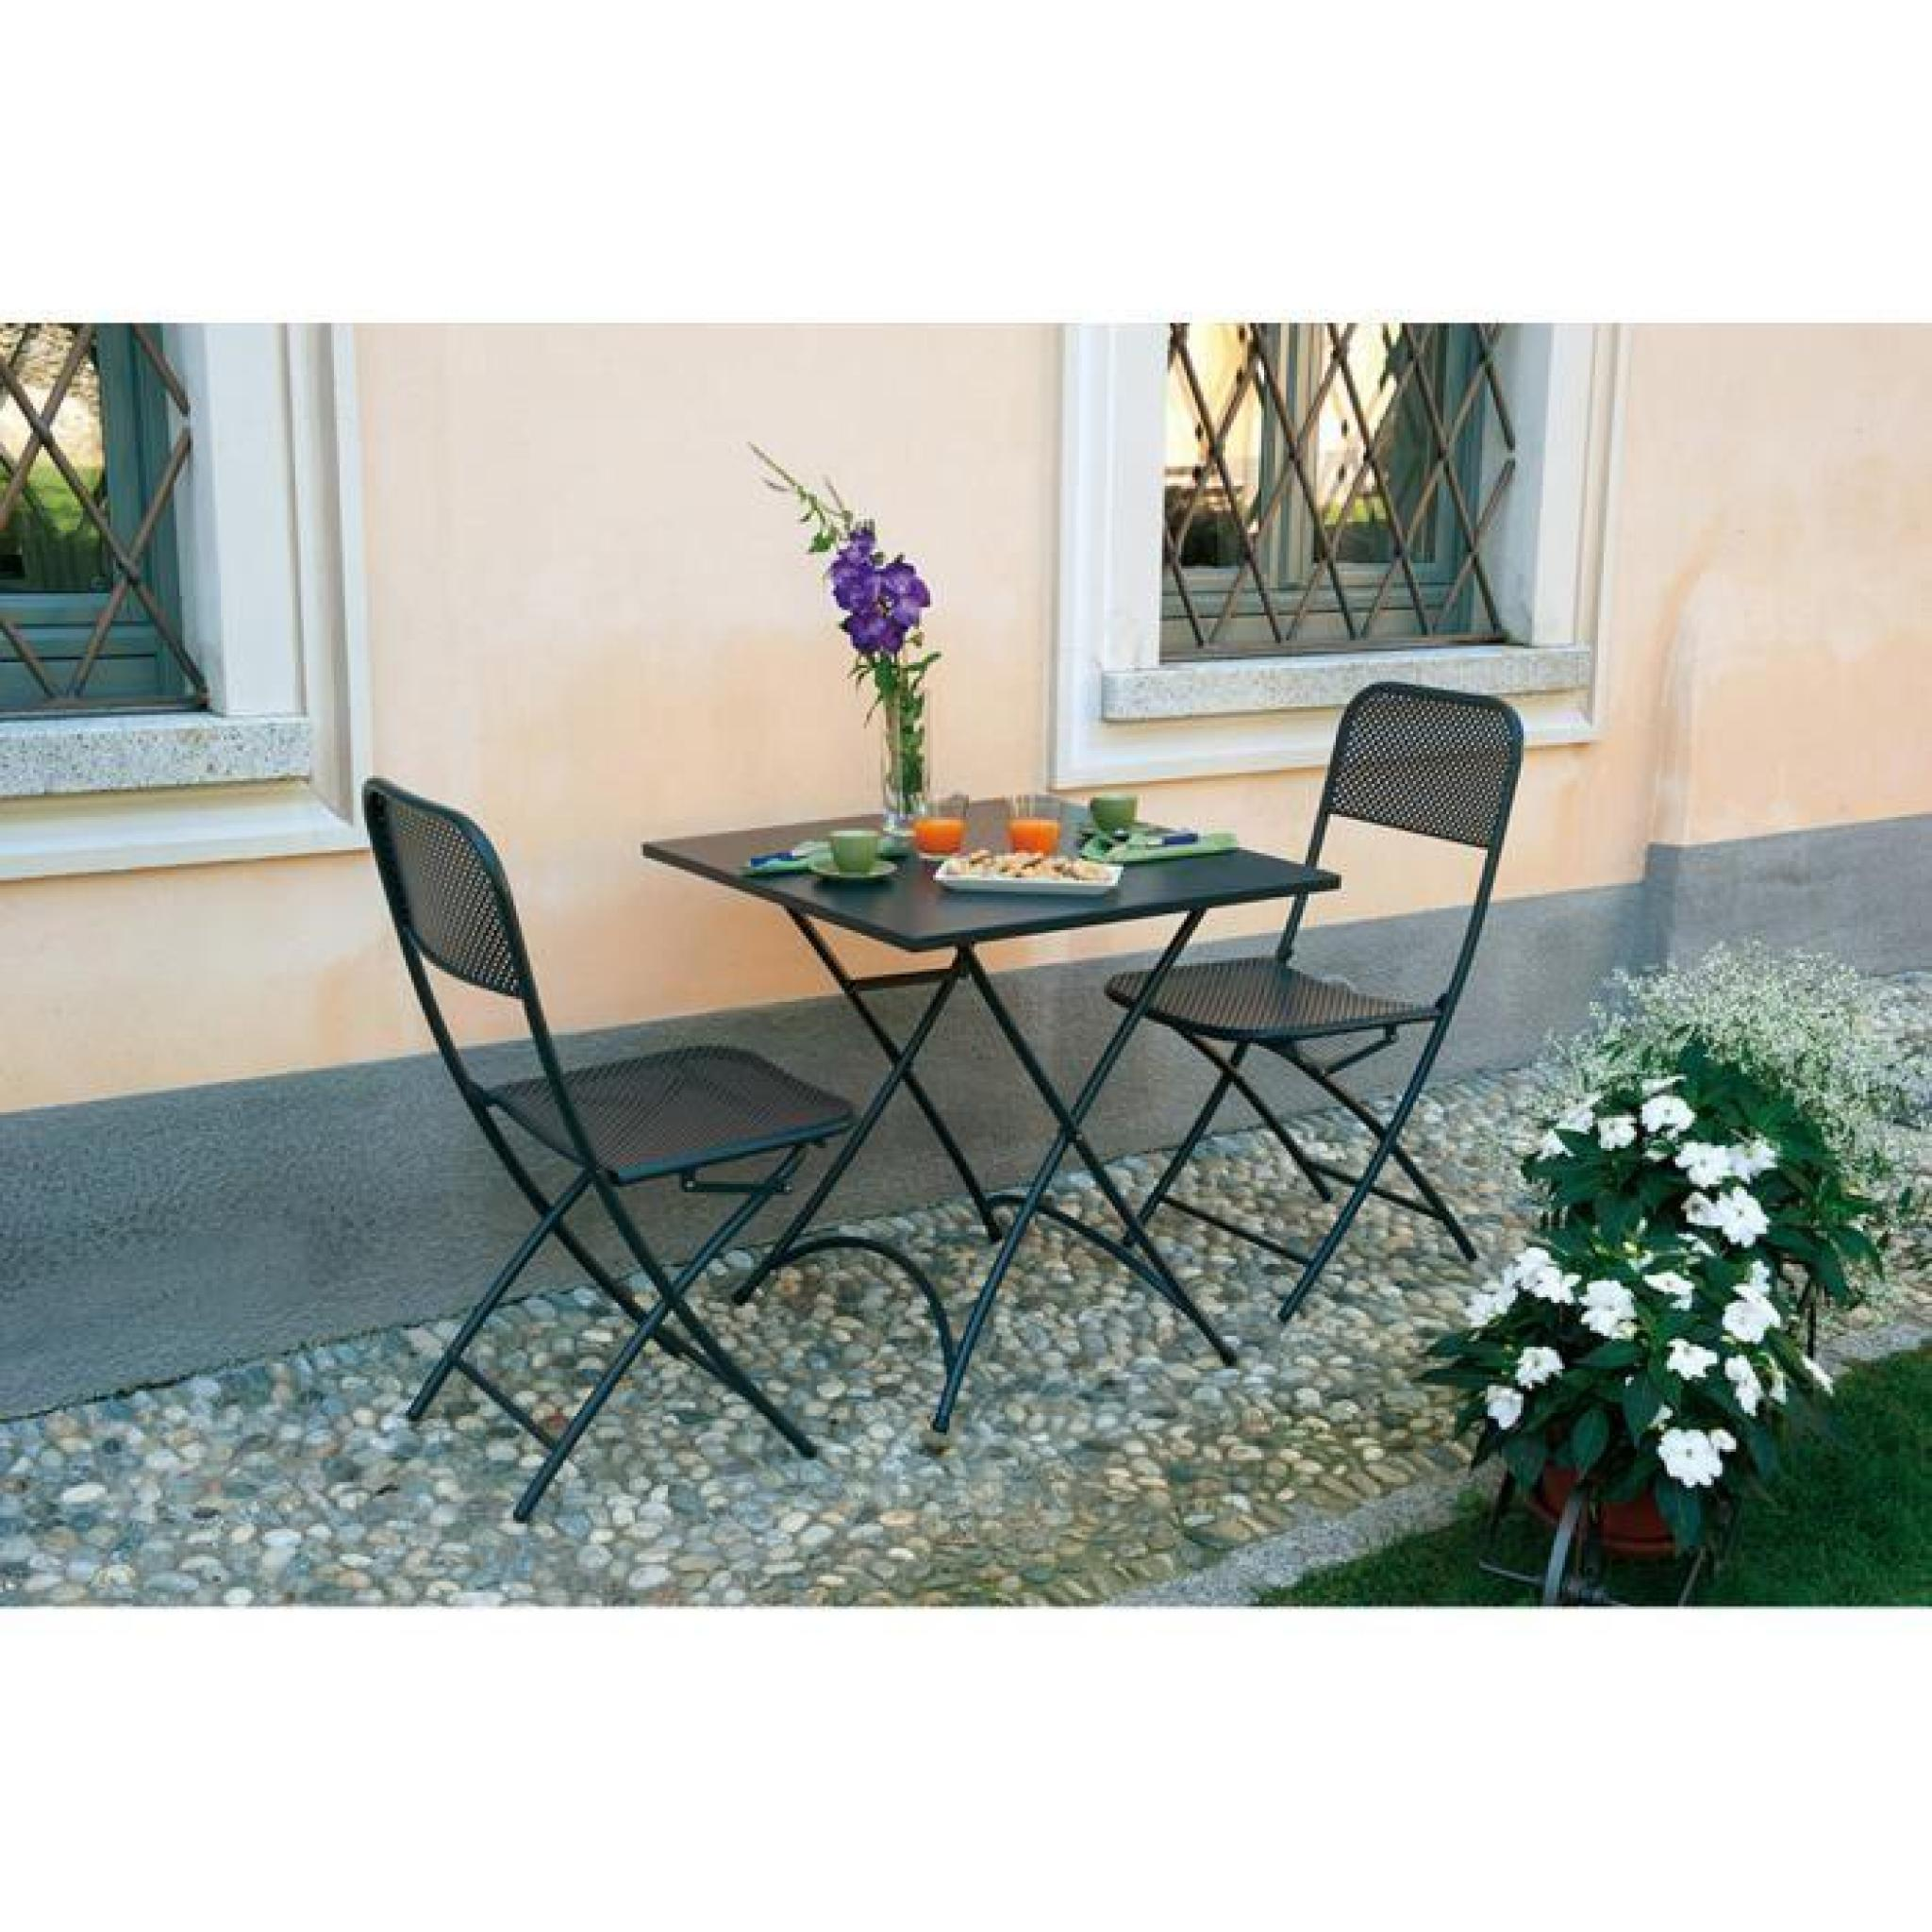 Table Ronde De Jardin Nouveau Archives Des Uncategorized Page 26 Sur 107 Figarovsgorafi Of 38 Inspirant Table Ronde De Jardin